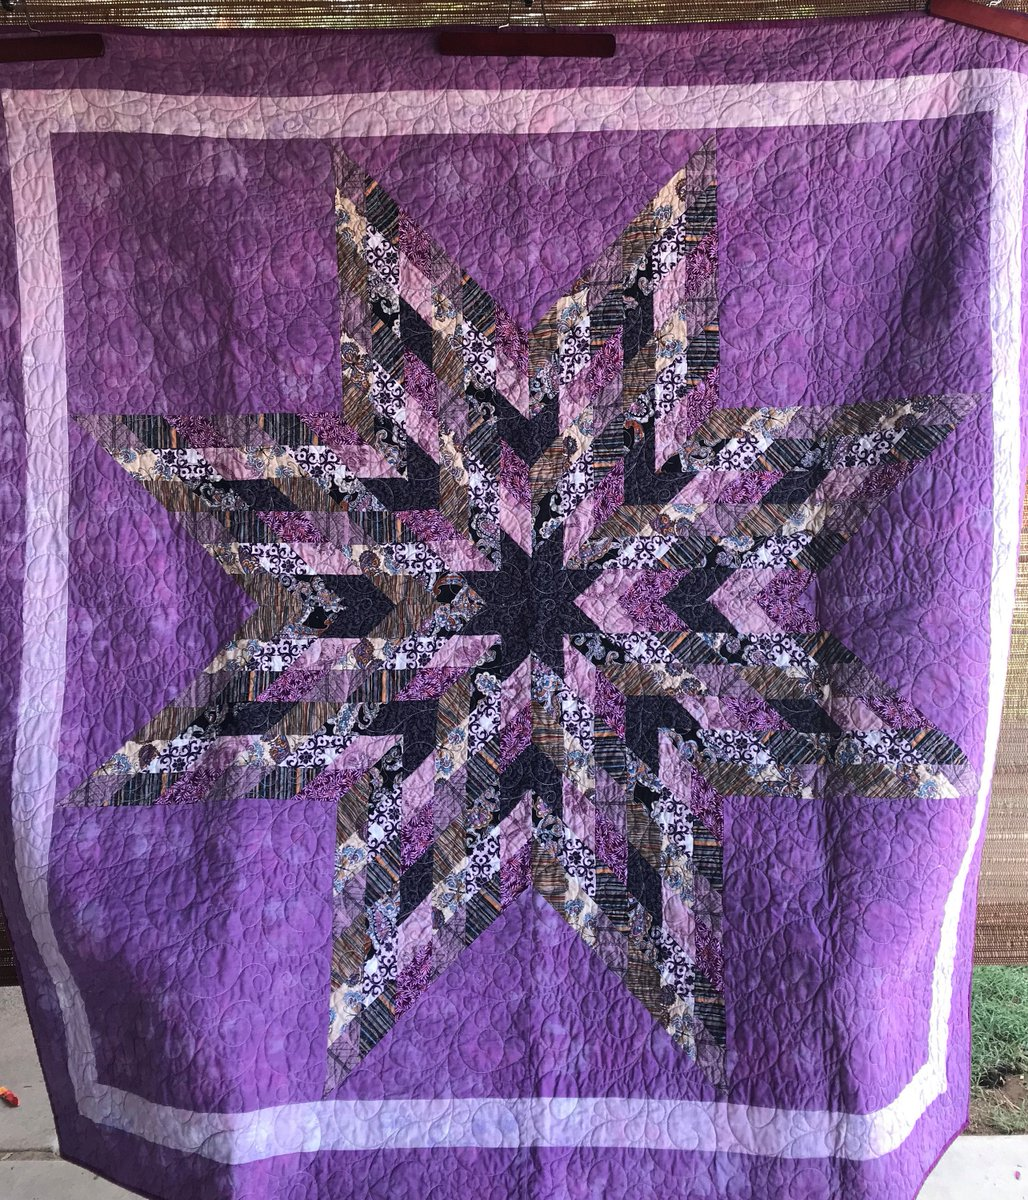 Excited to share in my #etsy shop: 65 x 65 Lone Star Quilt  #housewares #bedroom #bedding #purple #black #geometric #cotton #fabric #brown